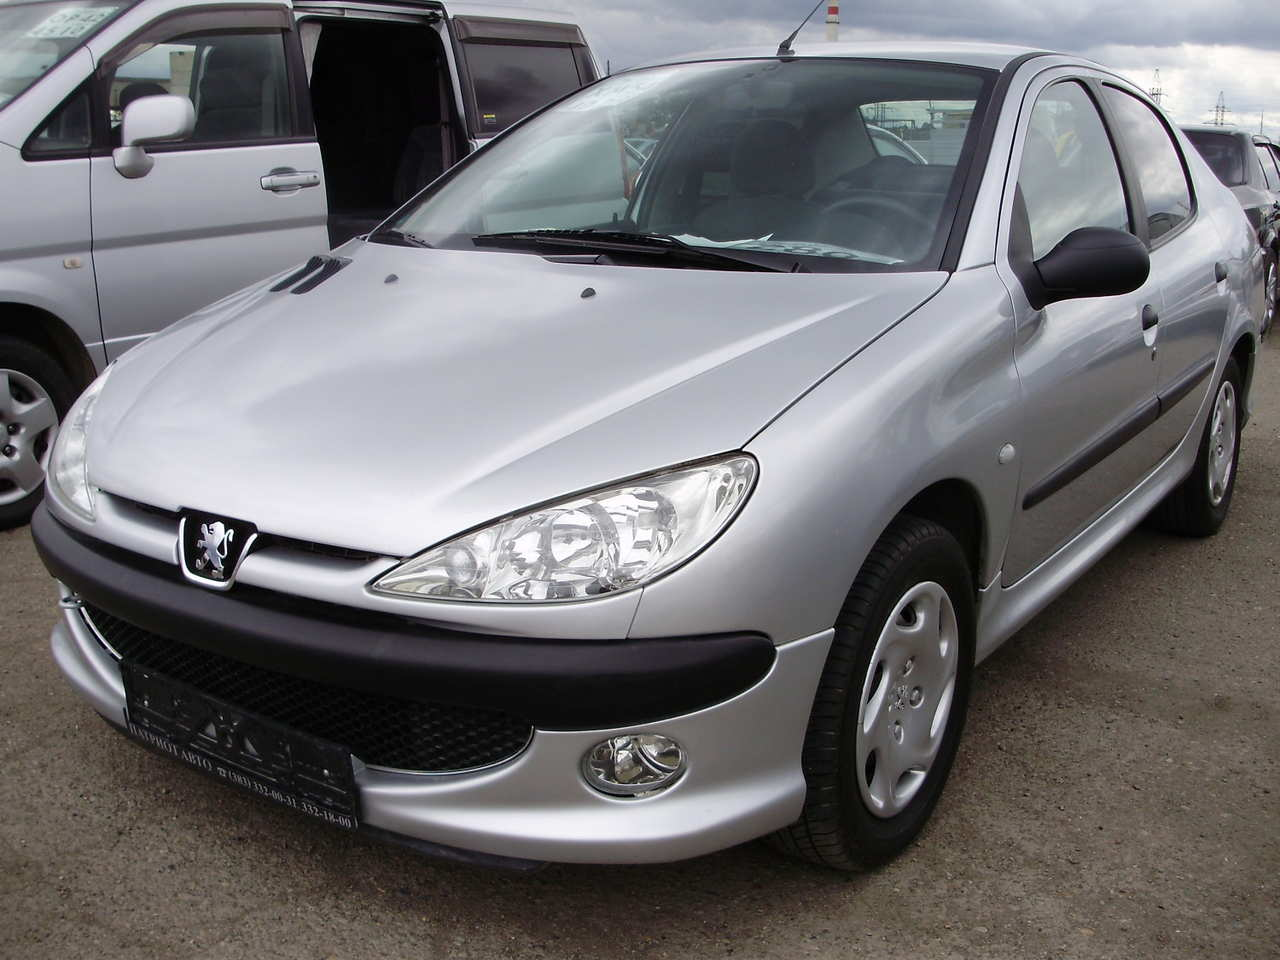 used 2007 peugeot 206 sedan photos 1400cc gasoline ff manual for sale. Black Bedroom Furniture Sets. Home Design Ideas